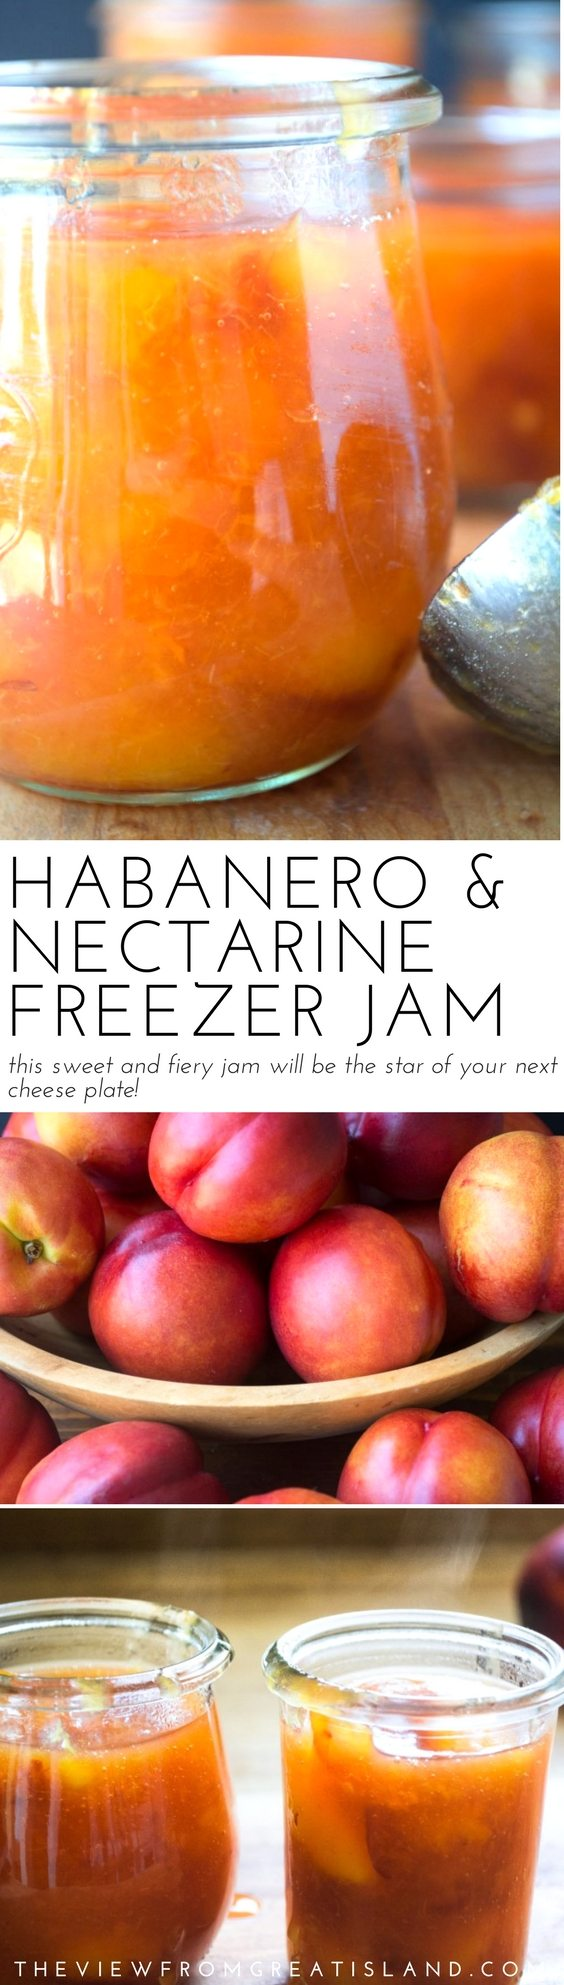 Habanero nectarine jam will liven up your morning toast and be the star of your cheese plate. This fiery but sweet jam is addictive! #freezerjam #nectarines #nectarinejam #habanero #pepper #diyjam #hotpepperjam #preserving #stonefruit #summer